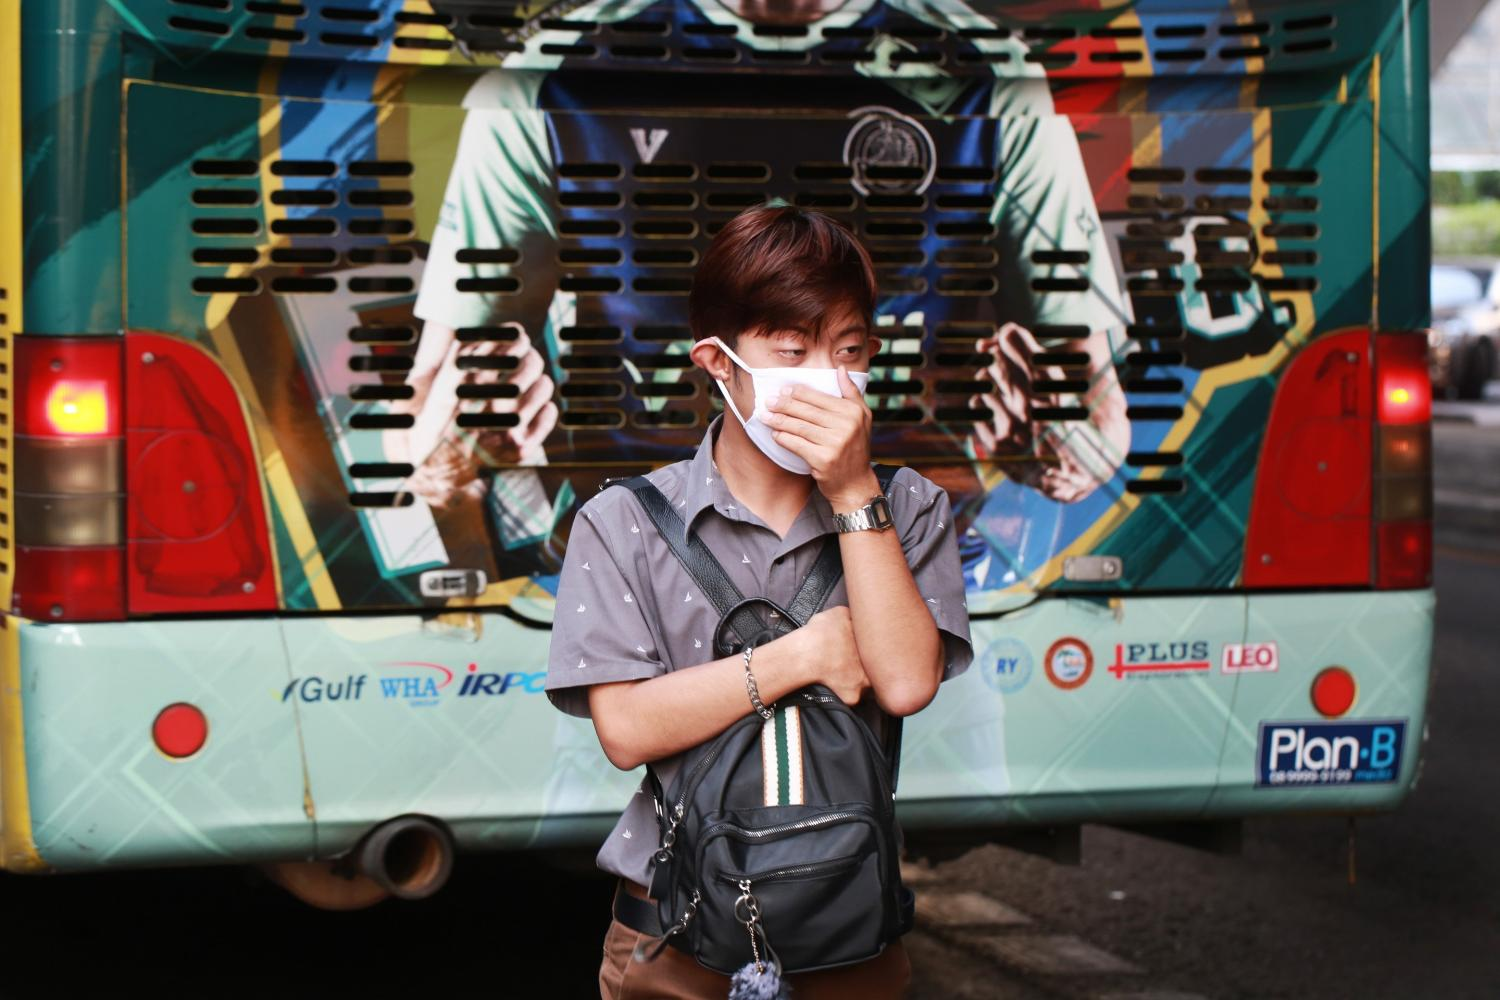 More and more people in Bangkok are forced to wear face masks due to the rising levels of PM2.5 particulate matter in the air, caused by emissions.